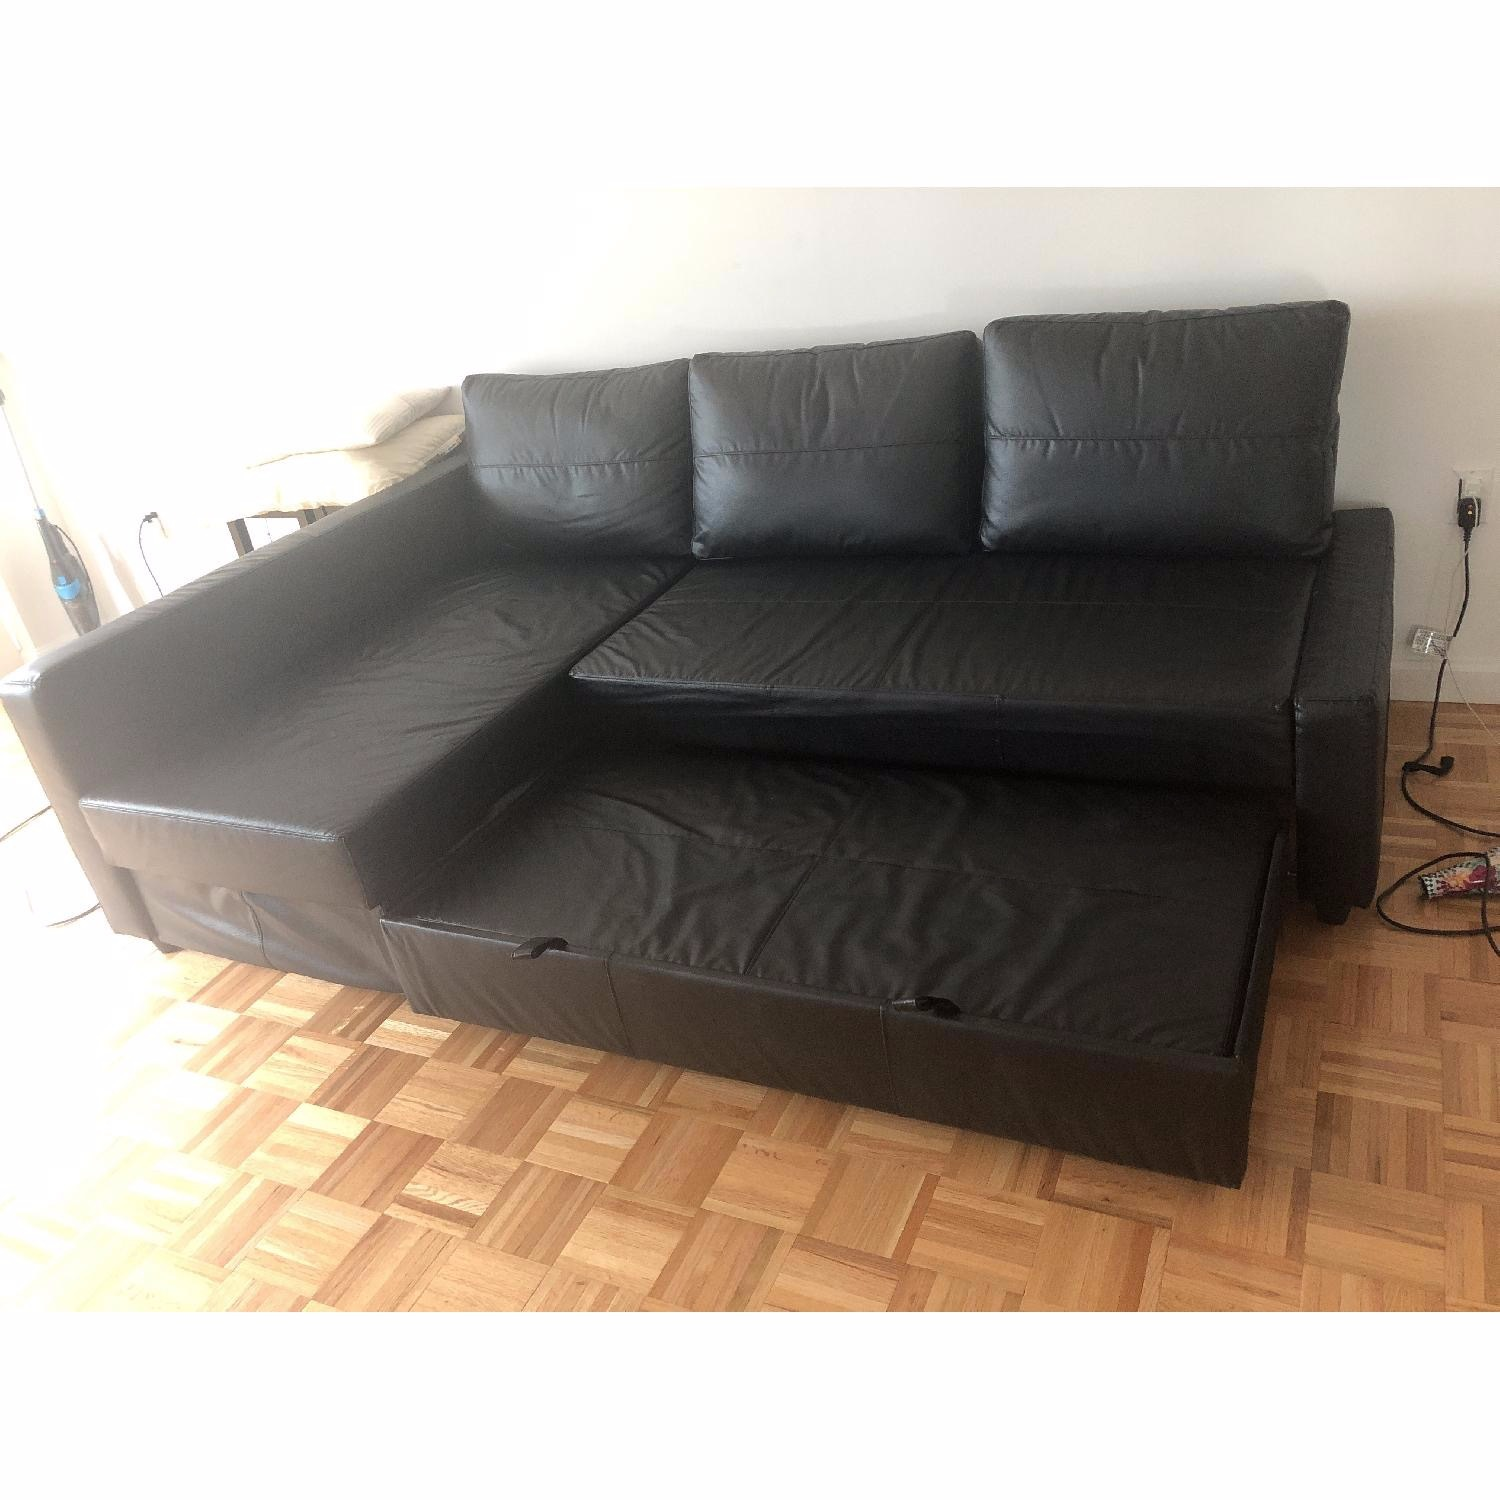 IKEA Black Sleeper Sofa - image-4